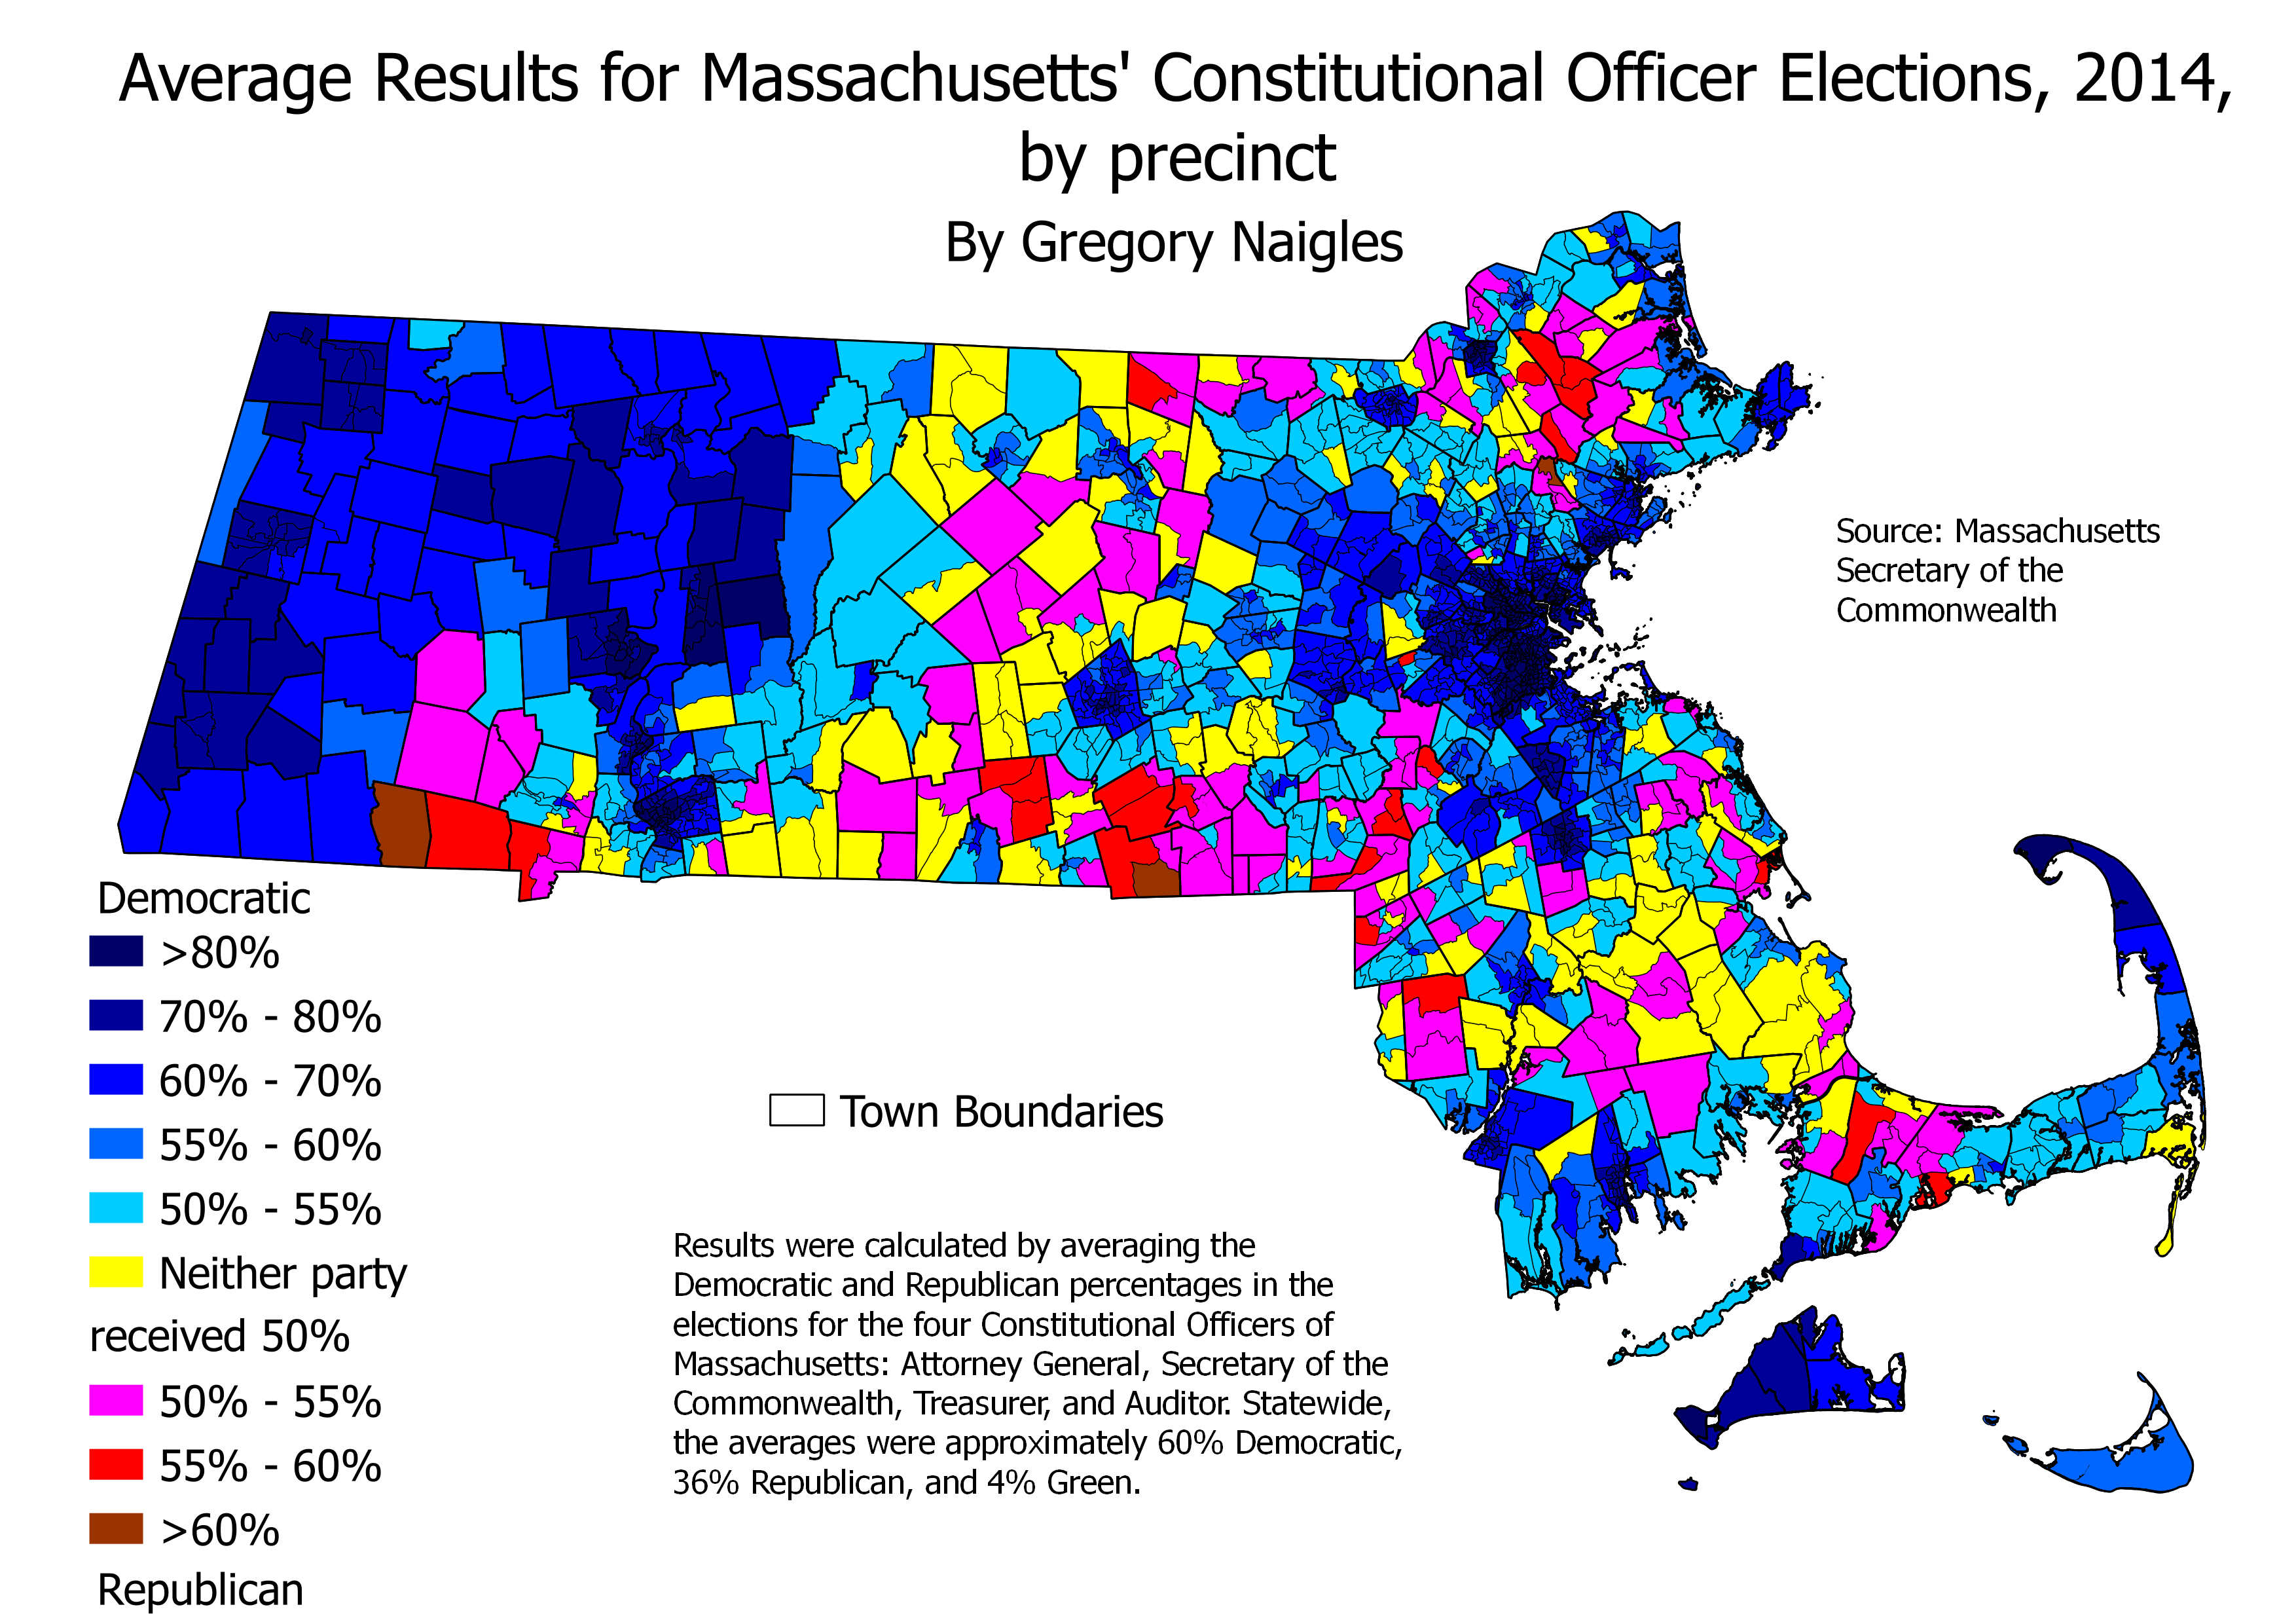 Maps and Analysis of Massachusetts Constitutional Officer